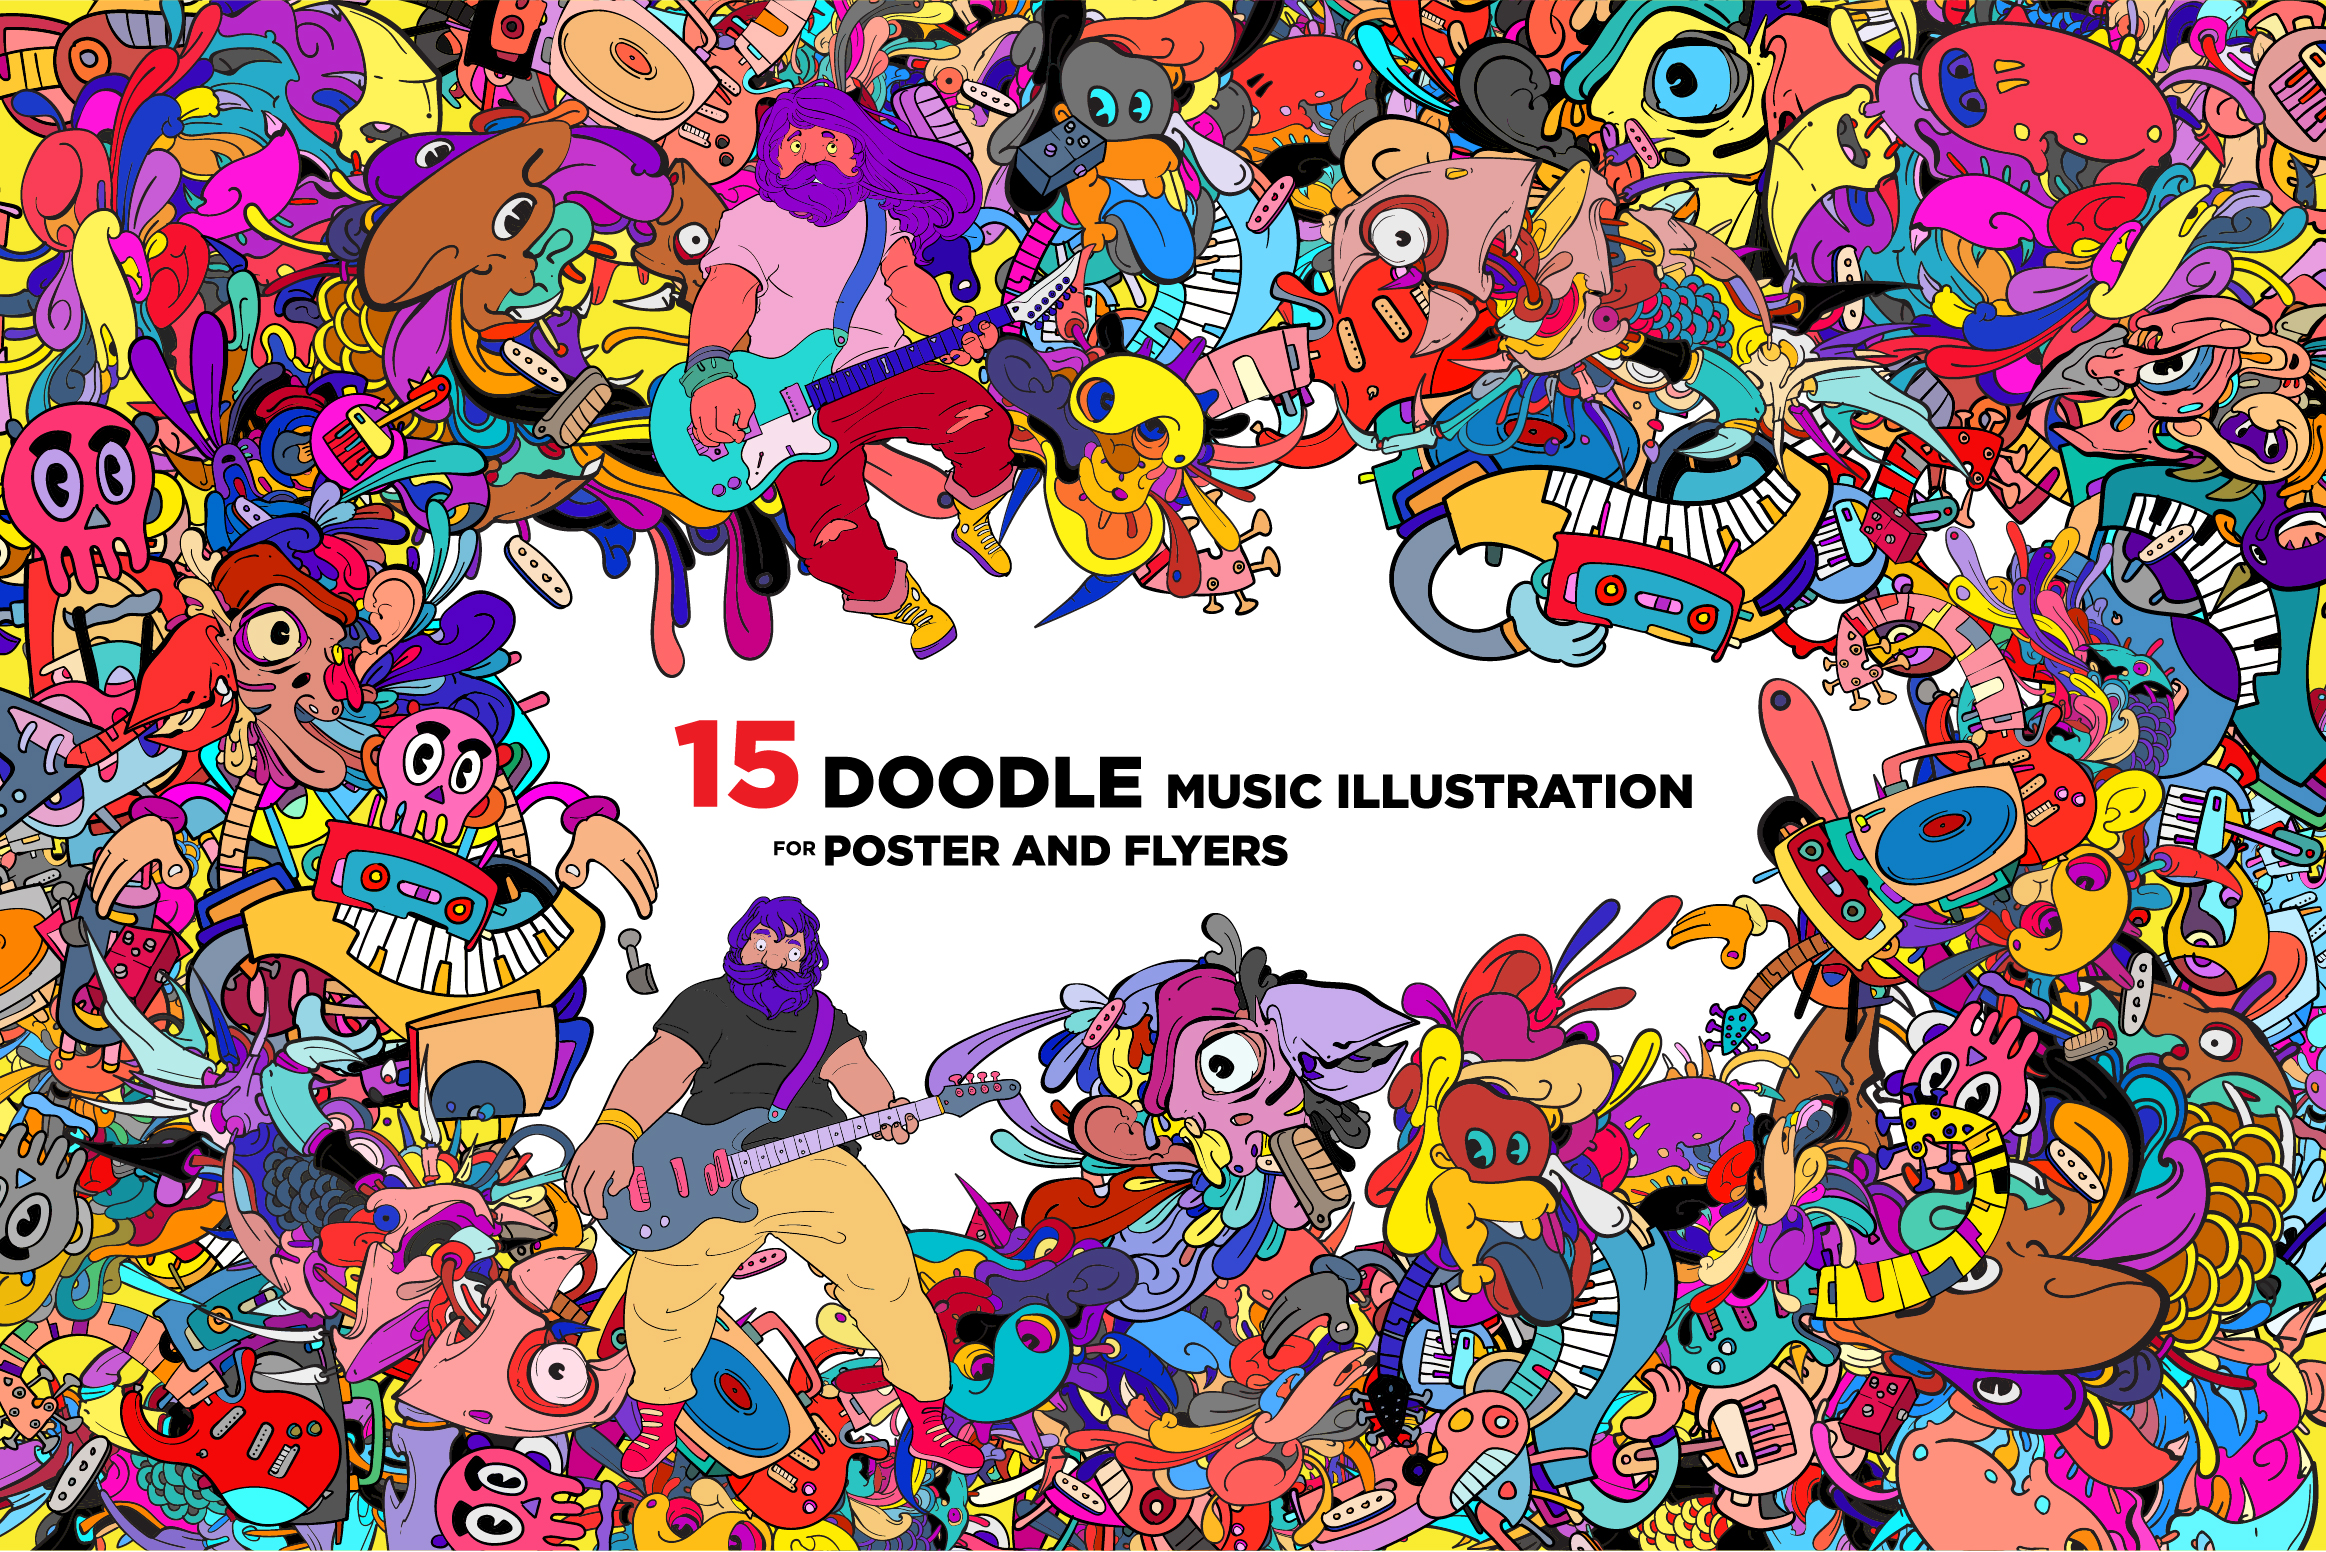 15 Doodle Music Illustration for World Music Day example image 1